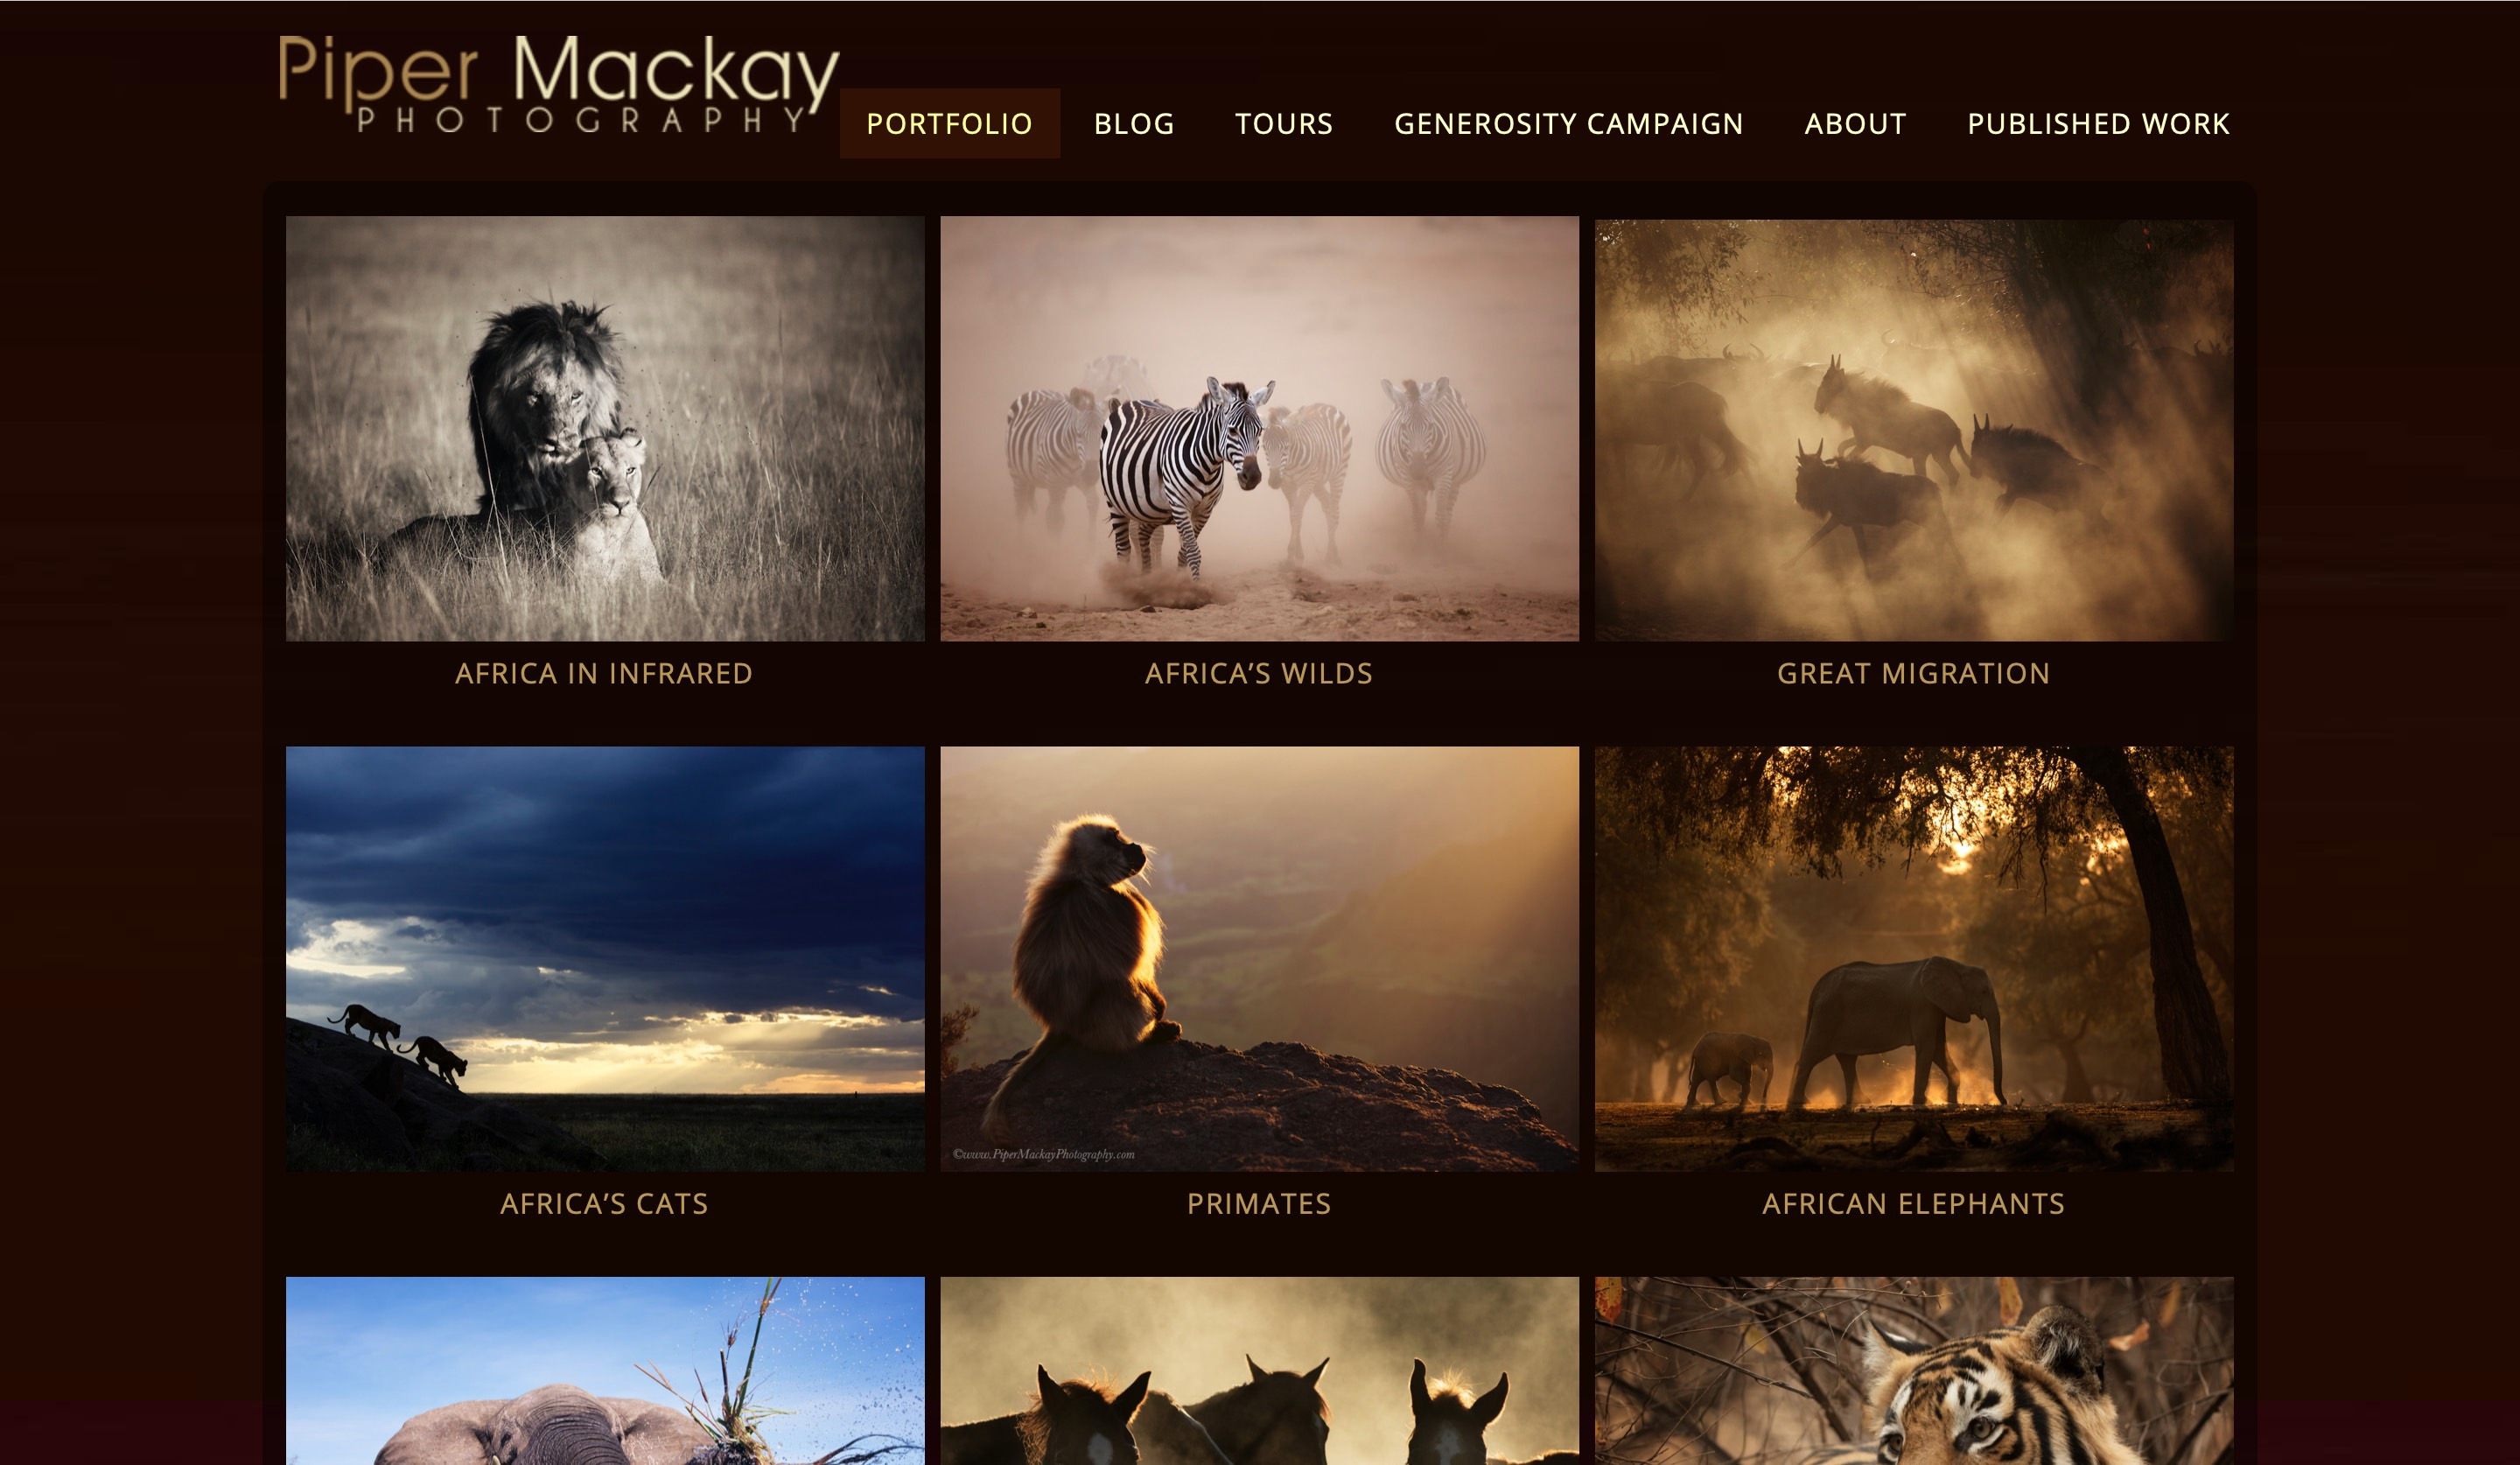 Piper Mackay website portfolio page screenshot